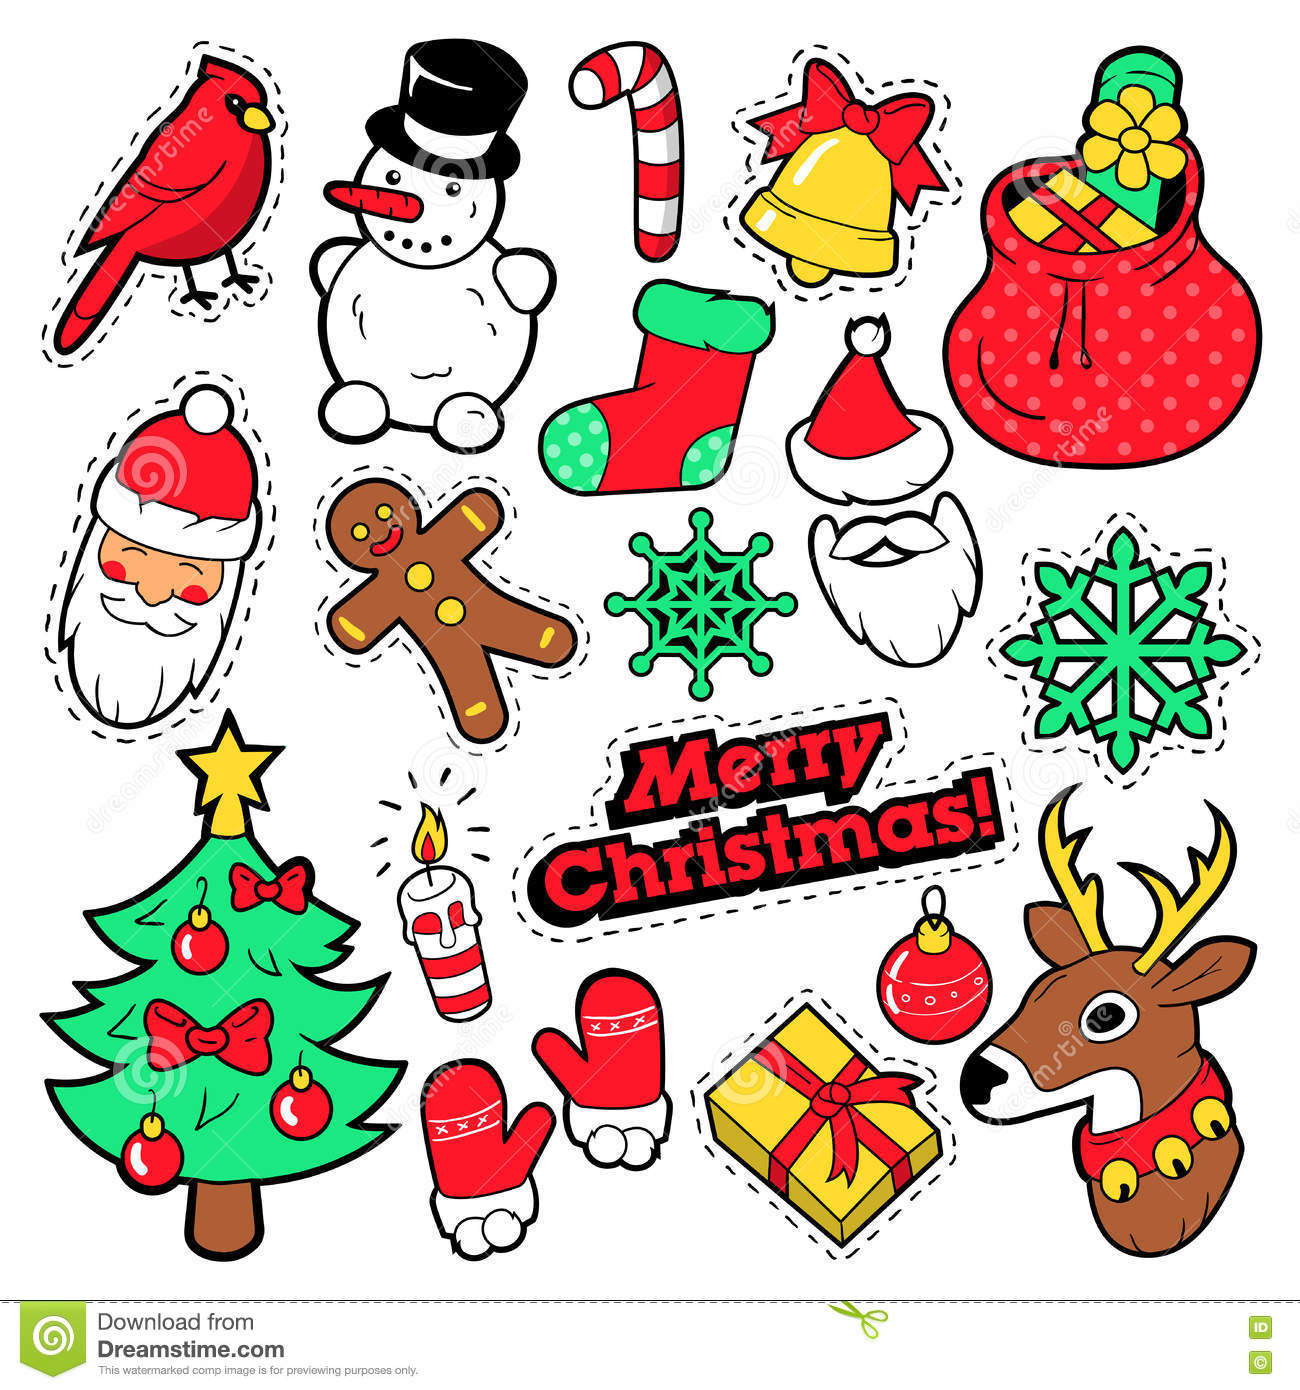 merry christmas stickers vector merry christmas badges patches stickers santa claus snowman snowflake christmas tree in